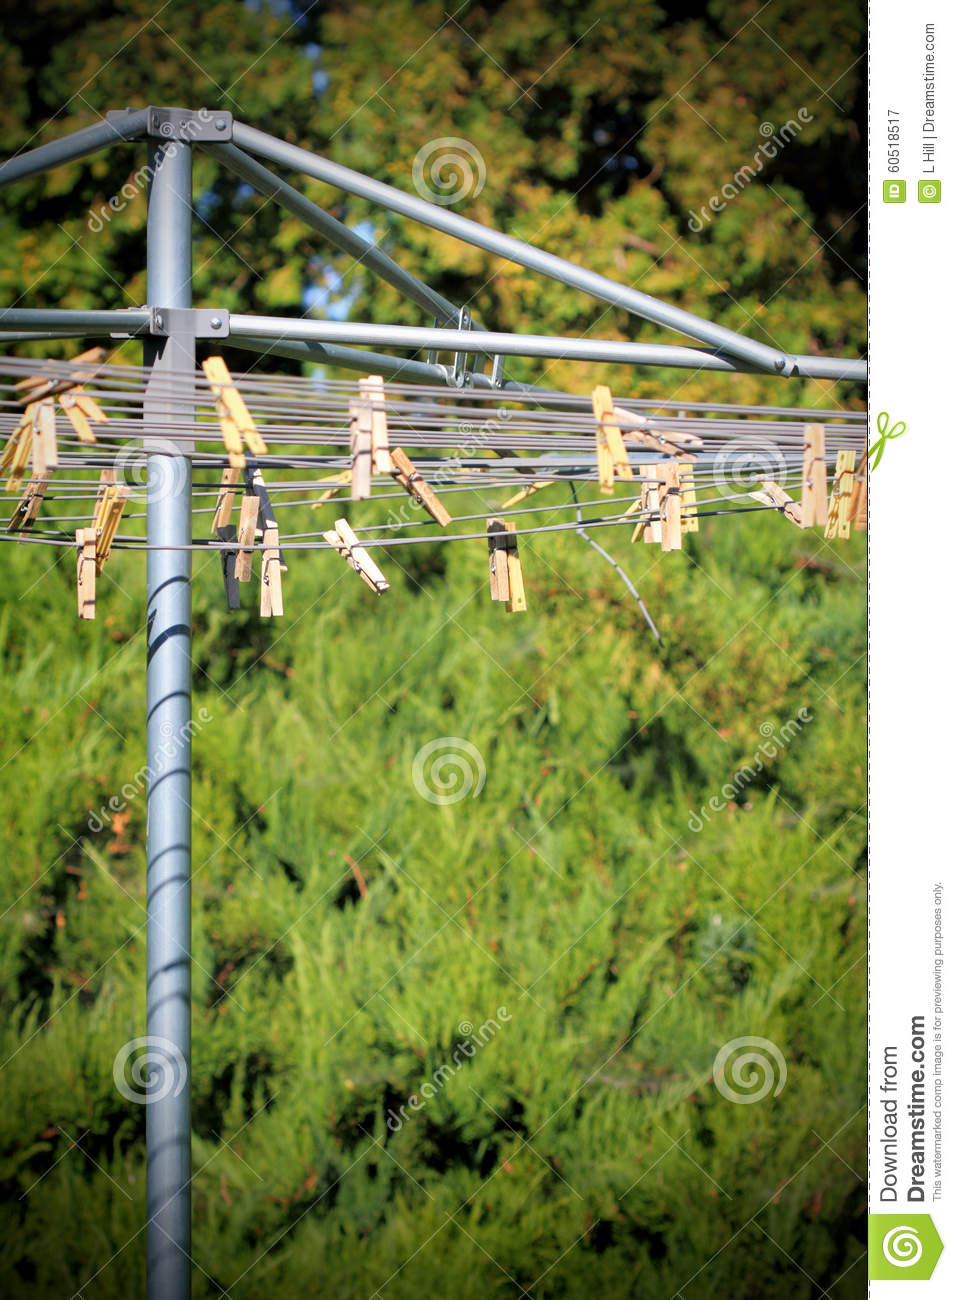 Clothespins On A Clothesline Stock Image - Image of housewife, line:  60518517